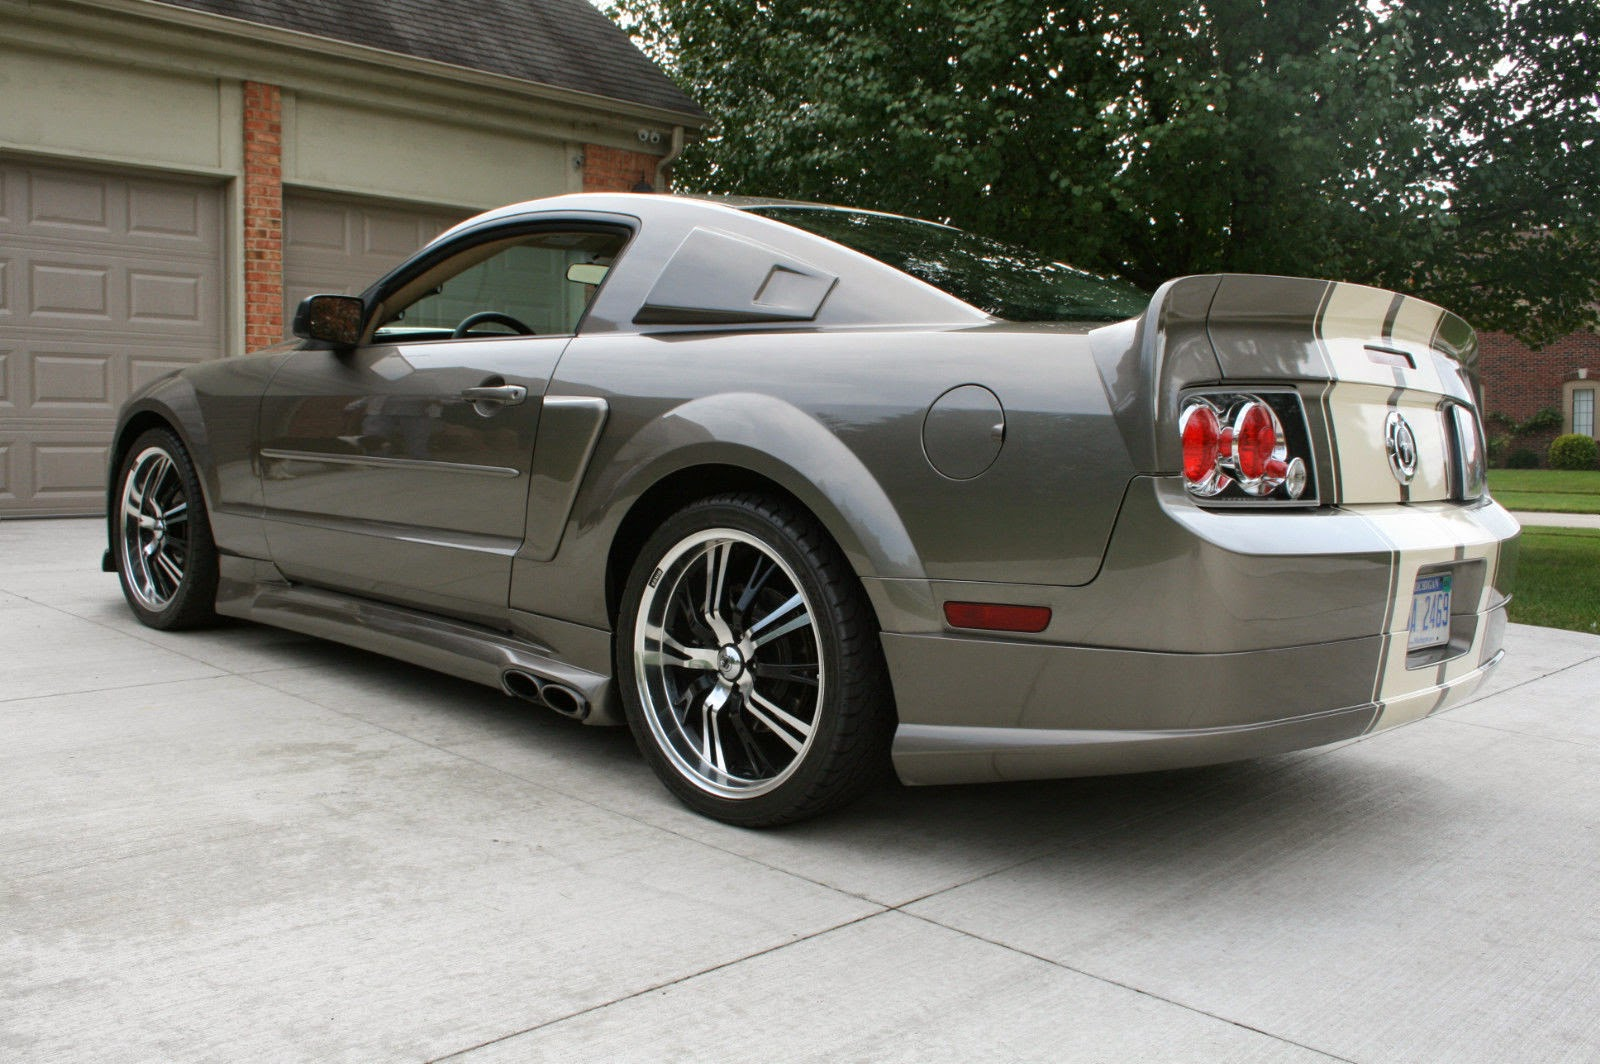 2005 Custom Ford Mustang Eleanor Cervini Twin Turbo V6